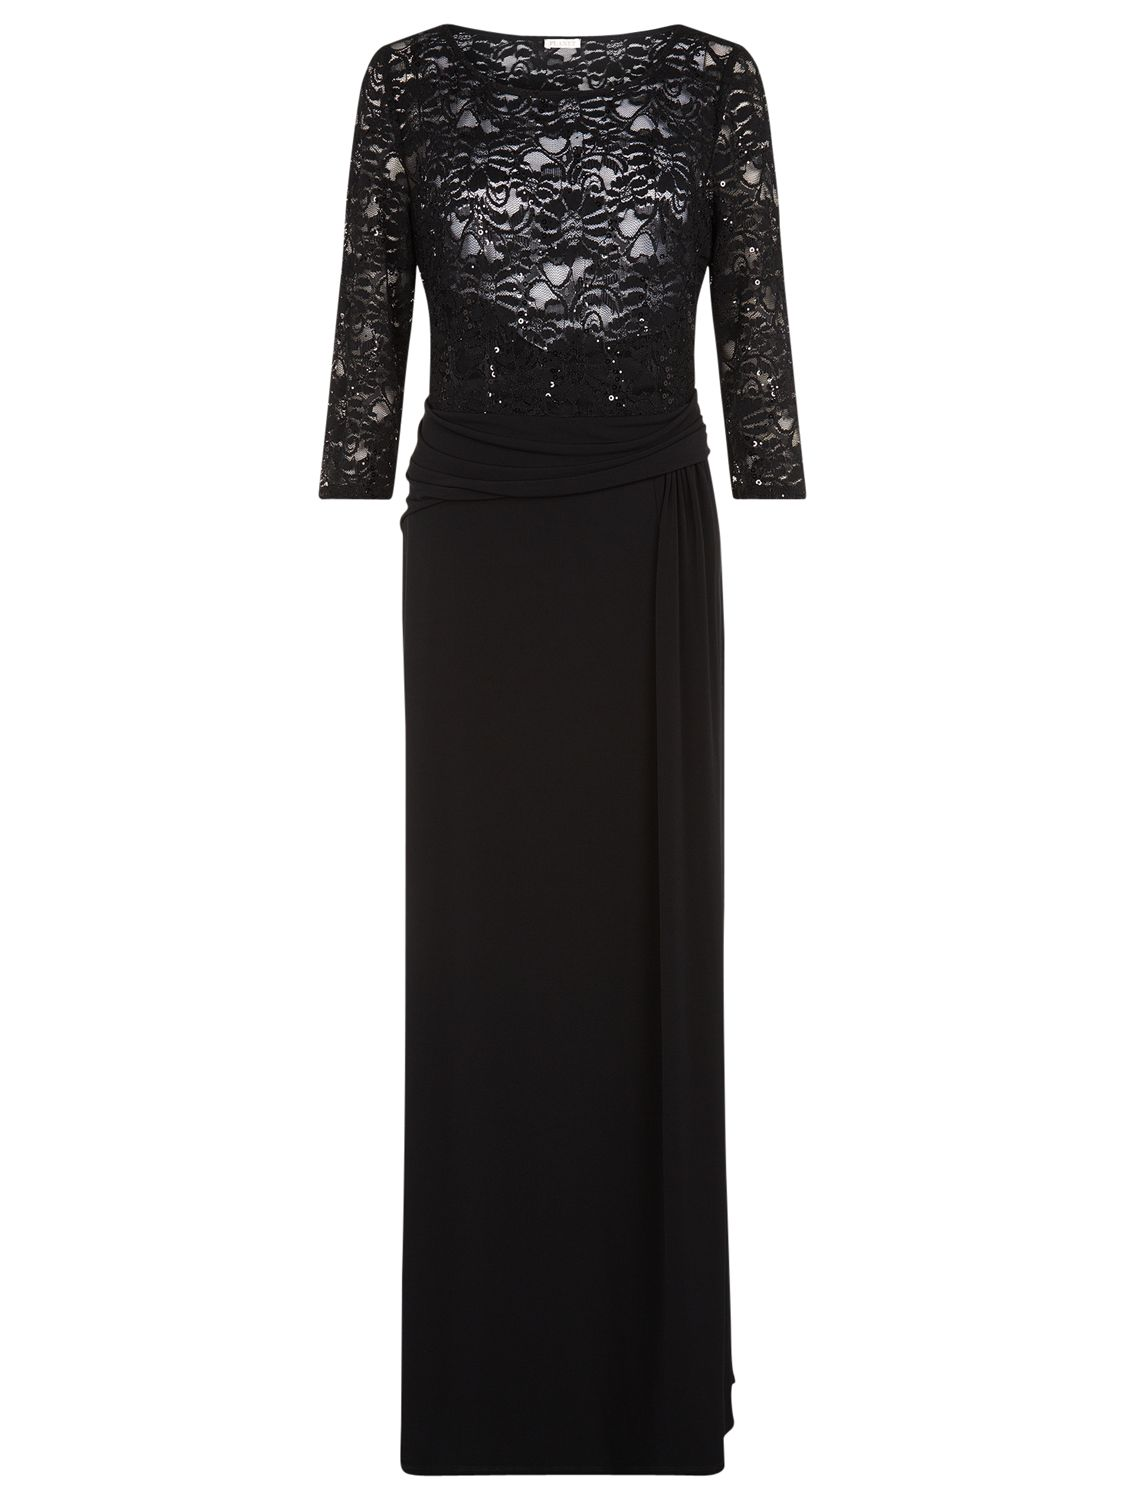 planet lace maxi dress black, planet, lace, maxi, dress, black, 10 16 14 12 18 8, clearance, womenswear offers, womens dresses offers, new years party offers, women, plus size, inactive womenswear, new reductions, party outfits, lace dress, womens dresses, evening gowns, special offers, 1699682